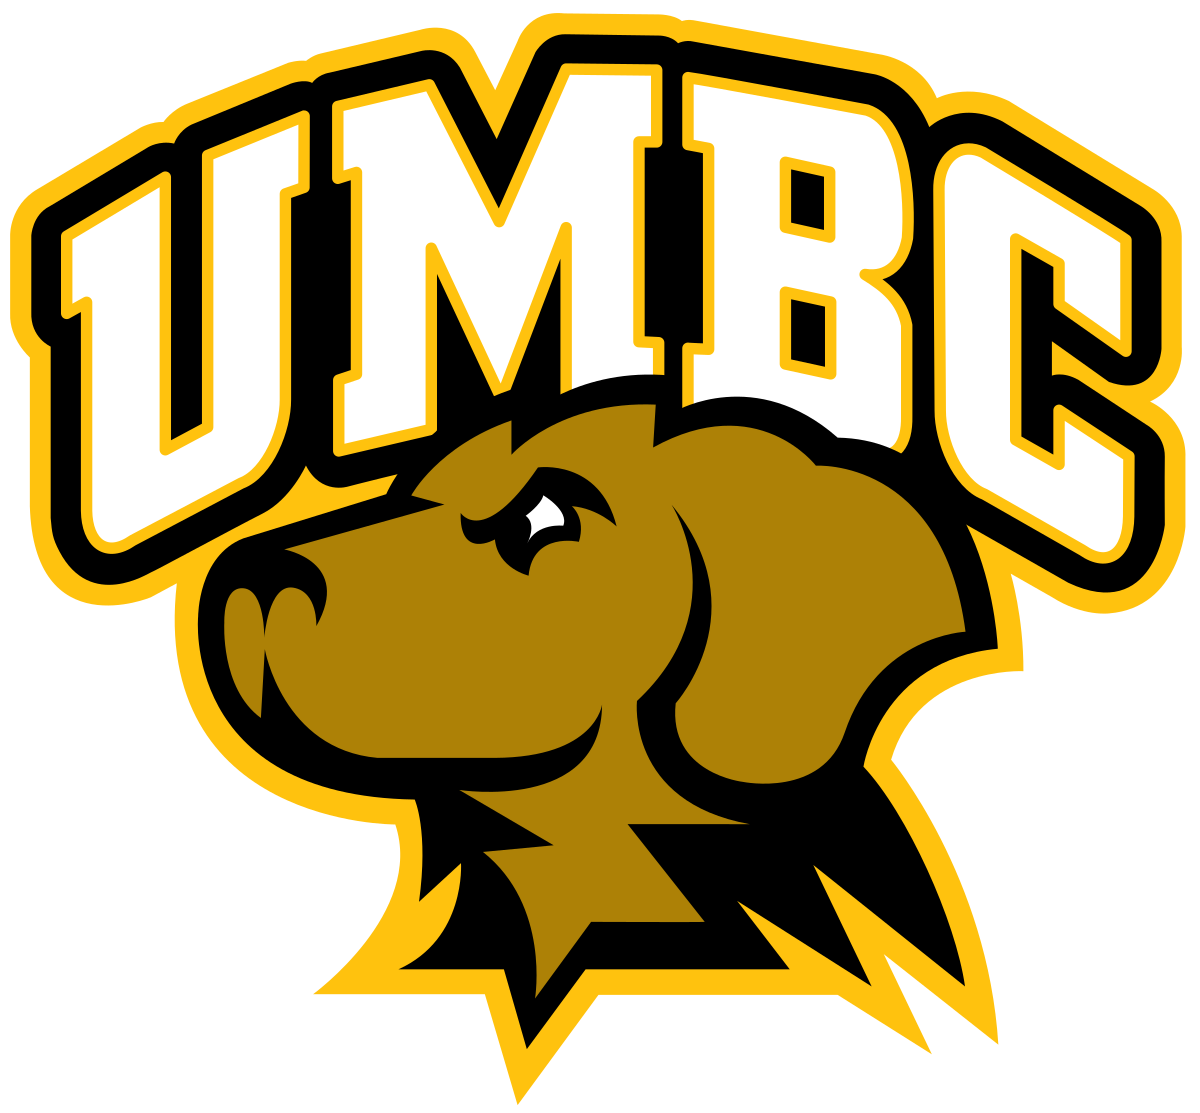 Basketball homecoming clipart svg black and white download UMBC Retrievers - Wikipedia svg black and white download